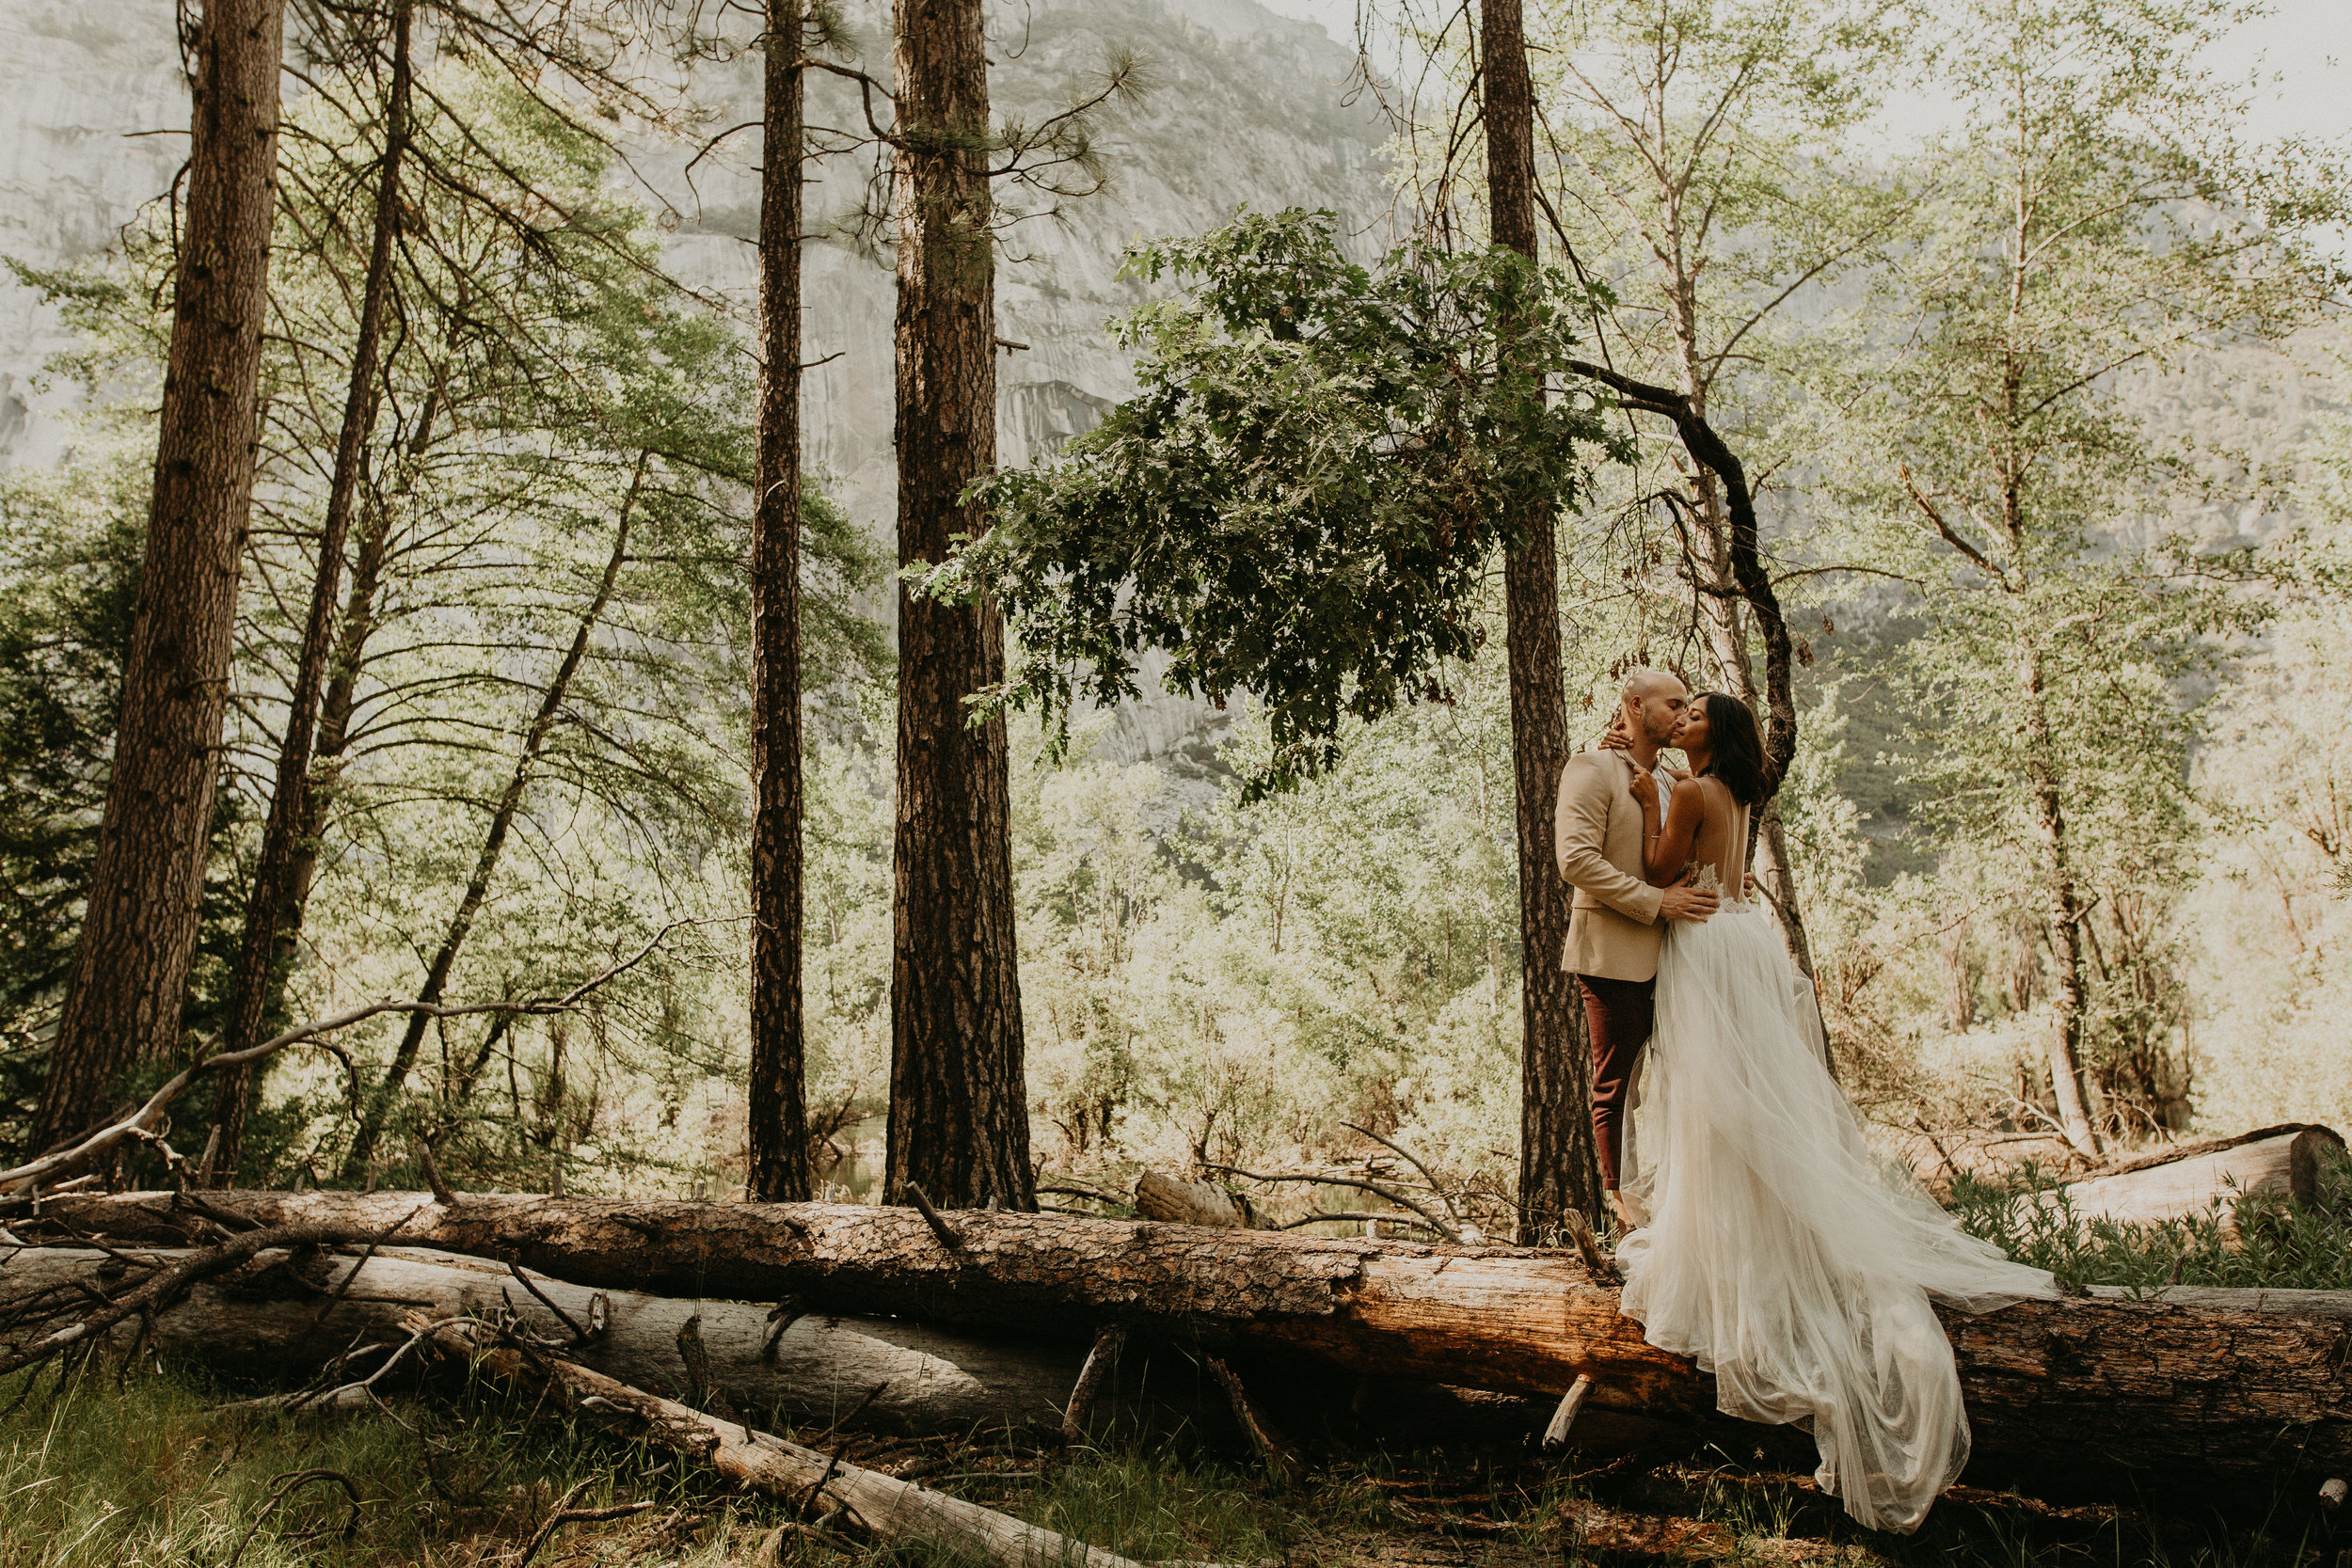 ready to start dreaming up your unique wedding day ?  - get in touch with me